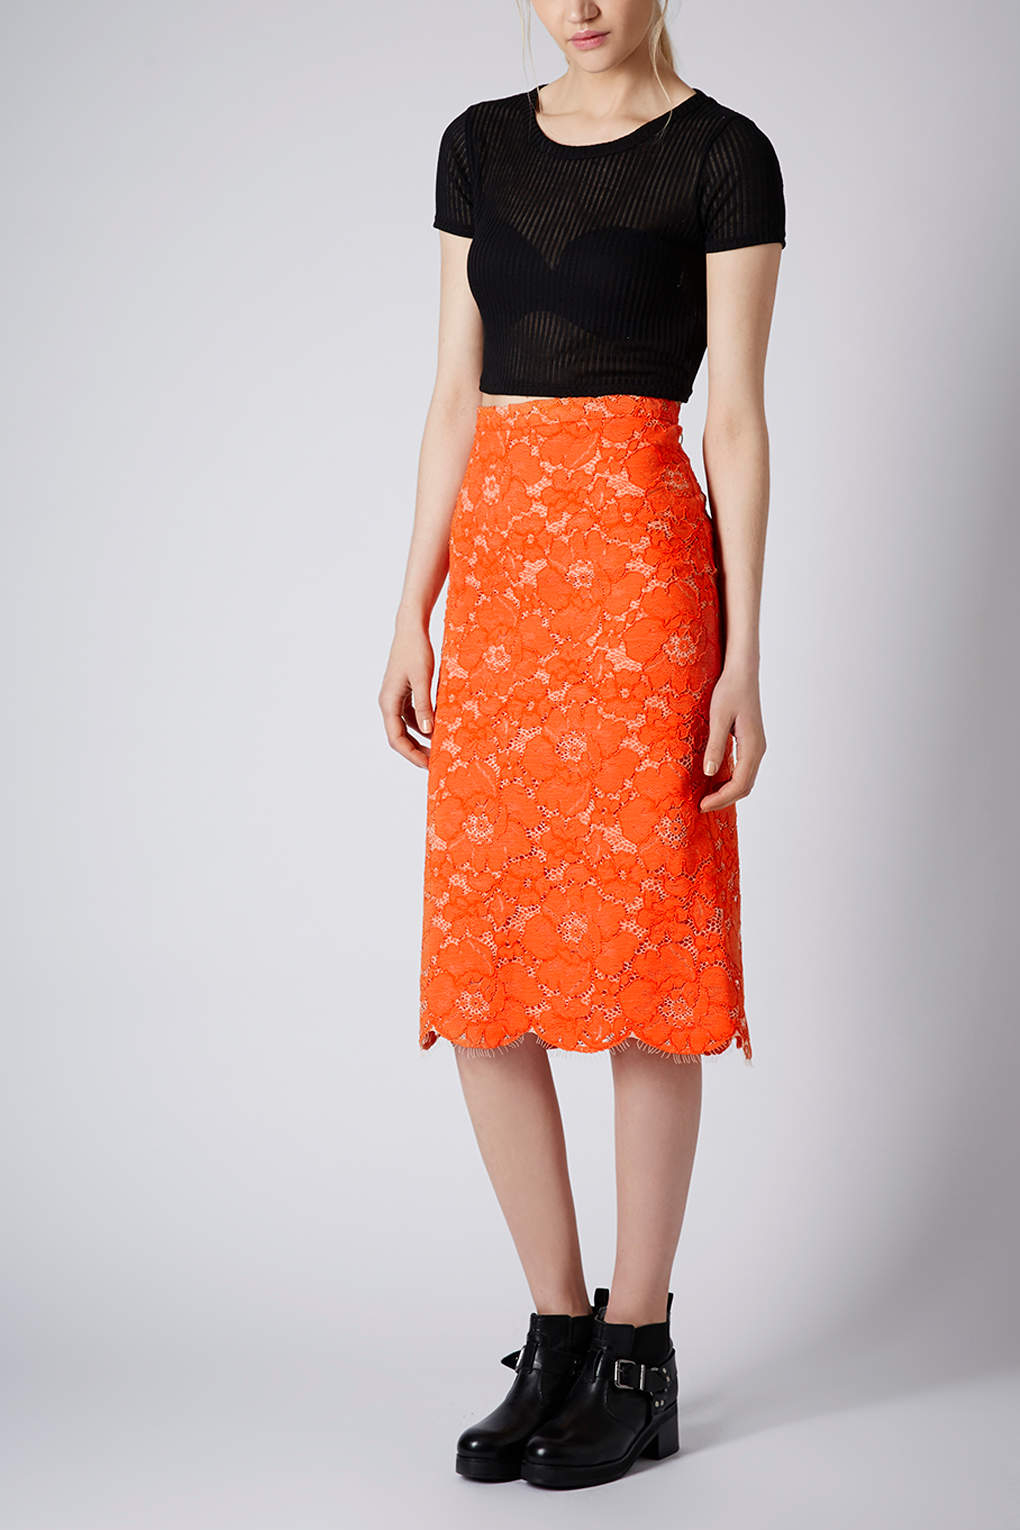 Topshop Cord Lace Pencil Skirt in Orange | Lyst